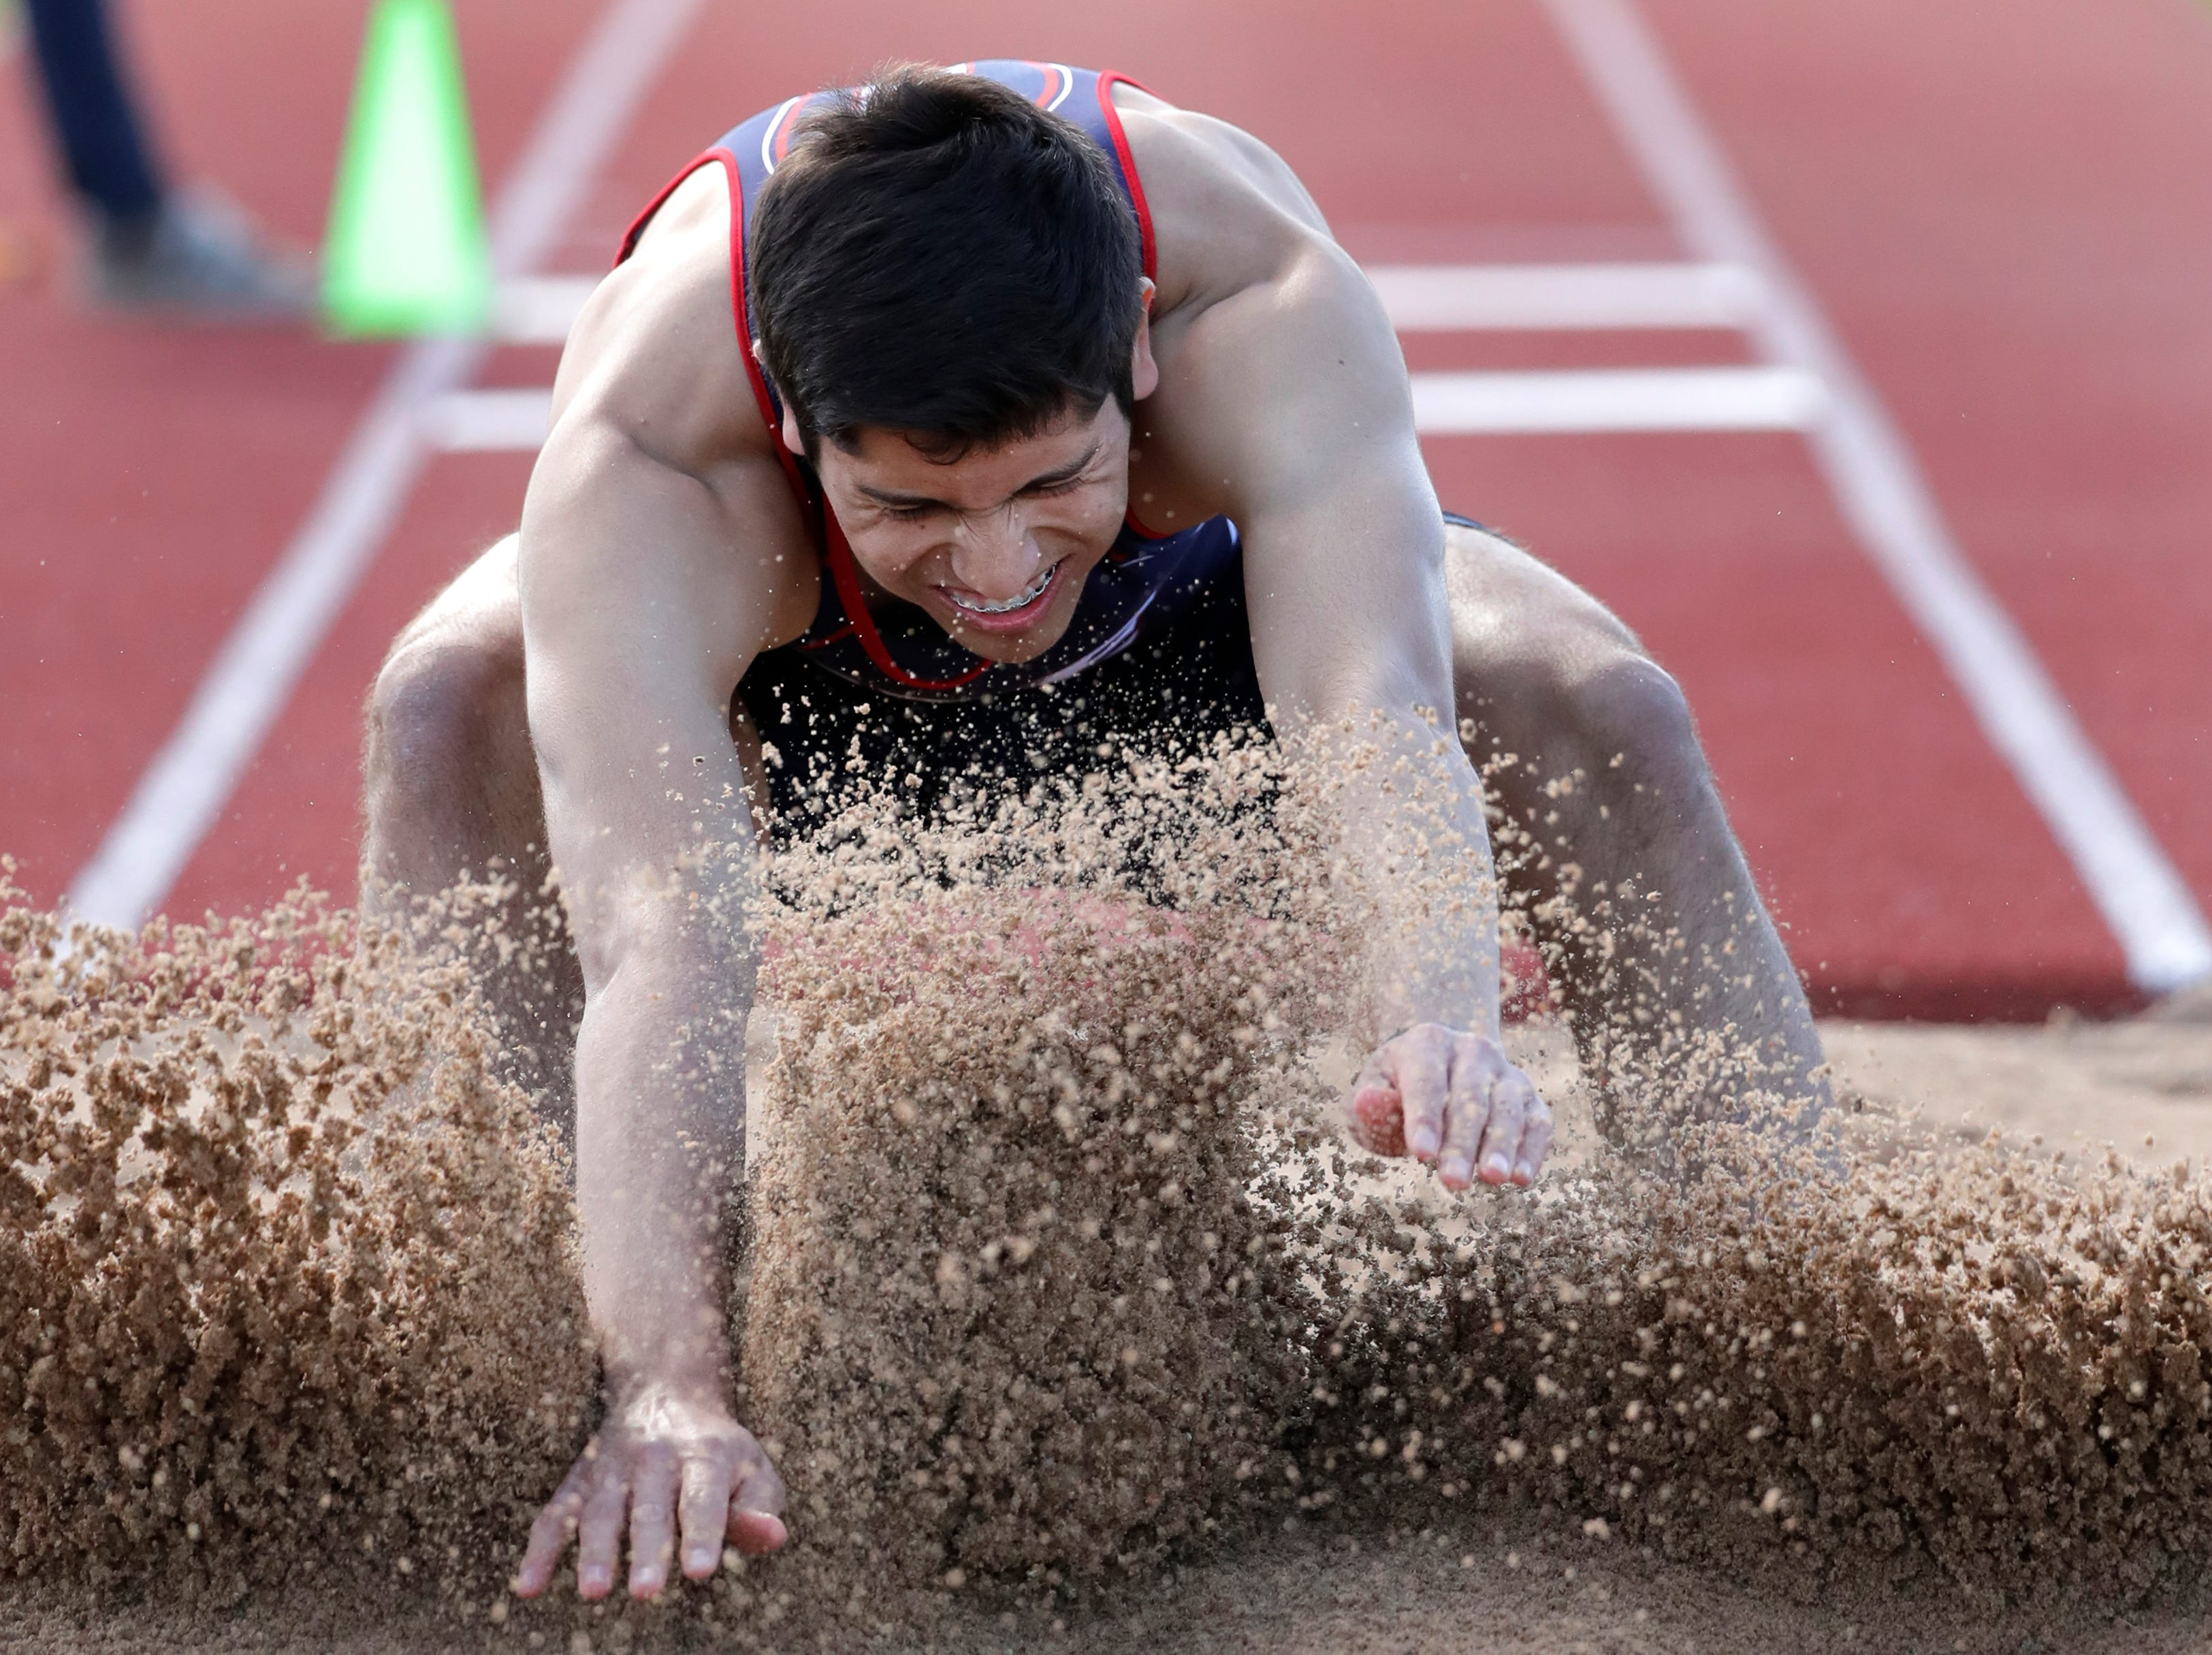 Appleton East HIgh School's Mario Mendoza competes in the triple jump during the Neenah co-ed invitational track and field meet Friday, April 26, 2019, at Neenah High School in Neenah, Wis. 